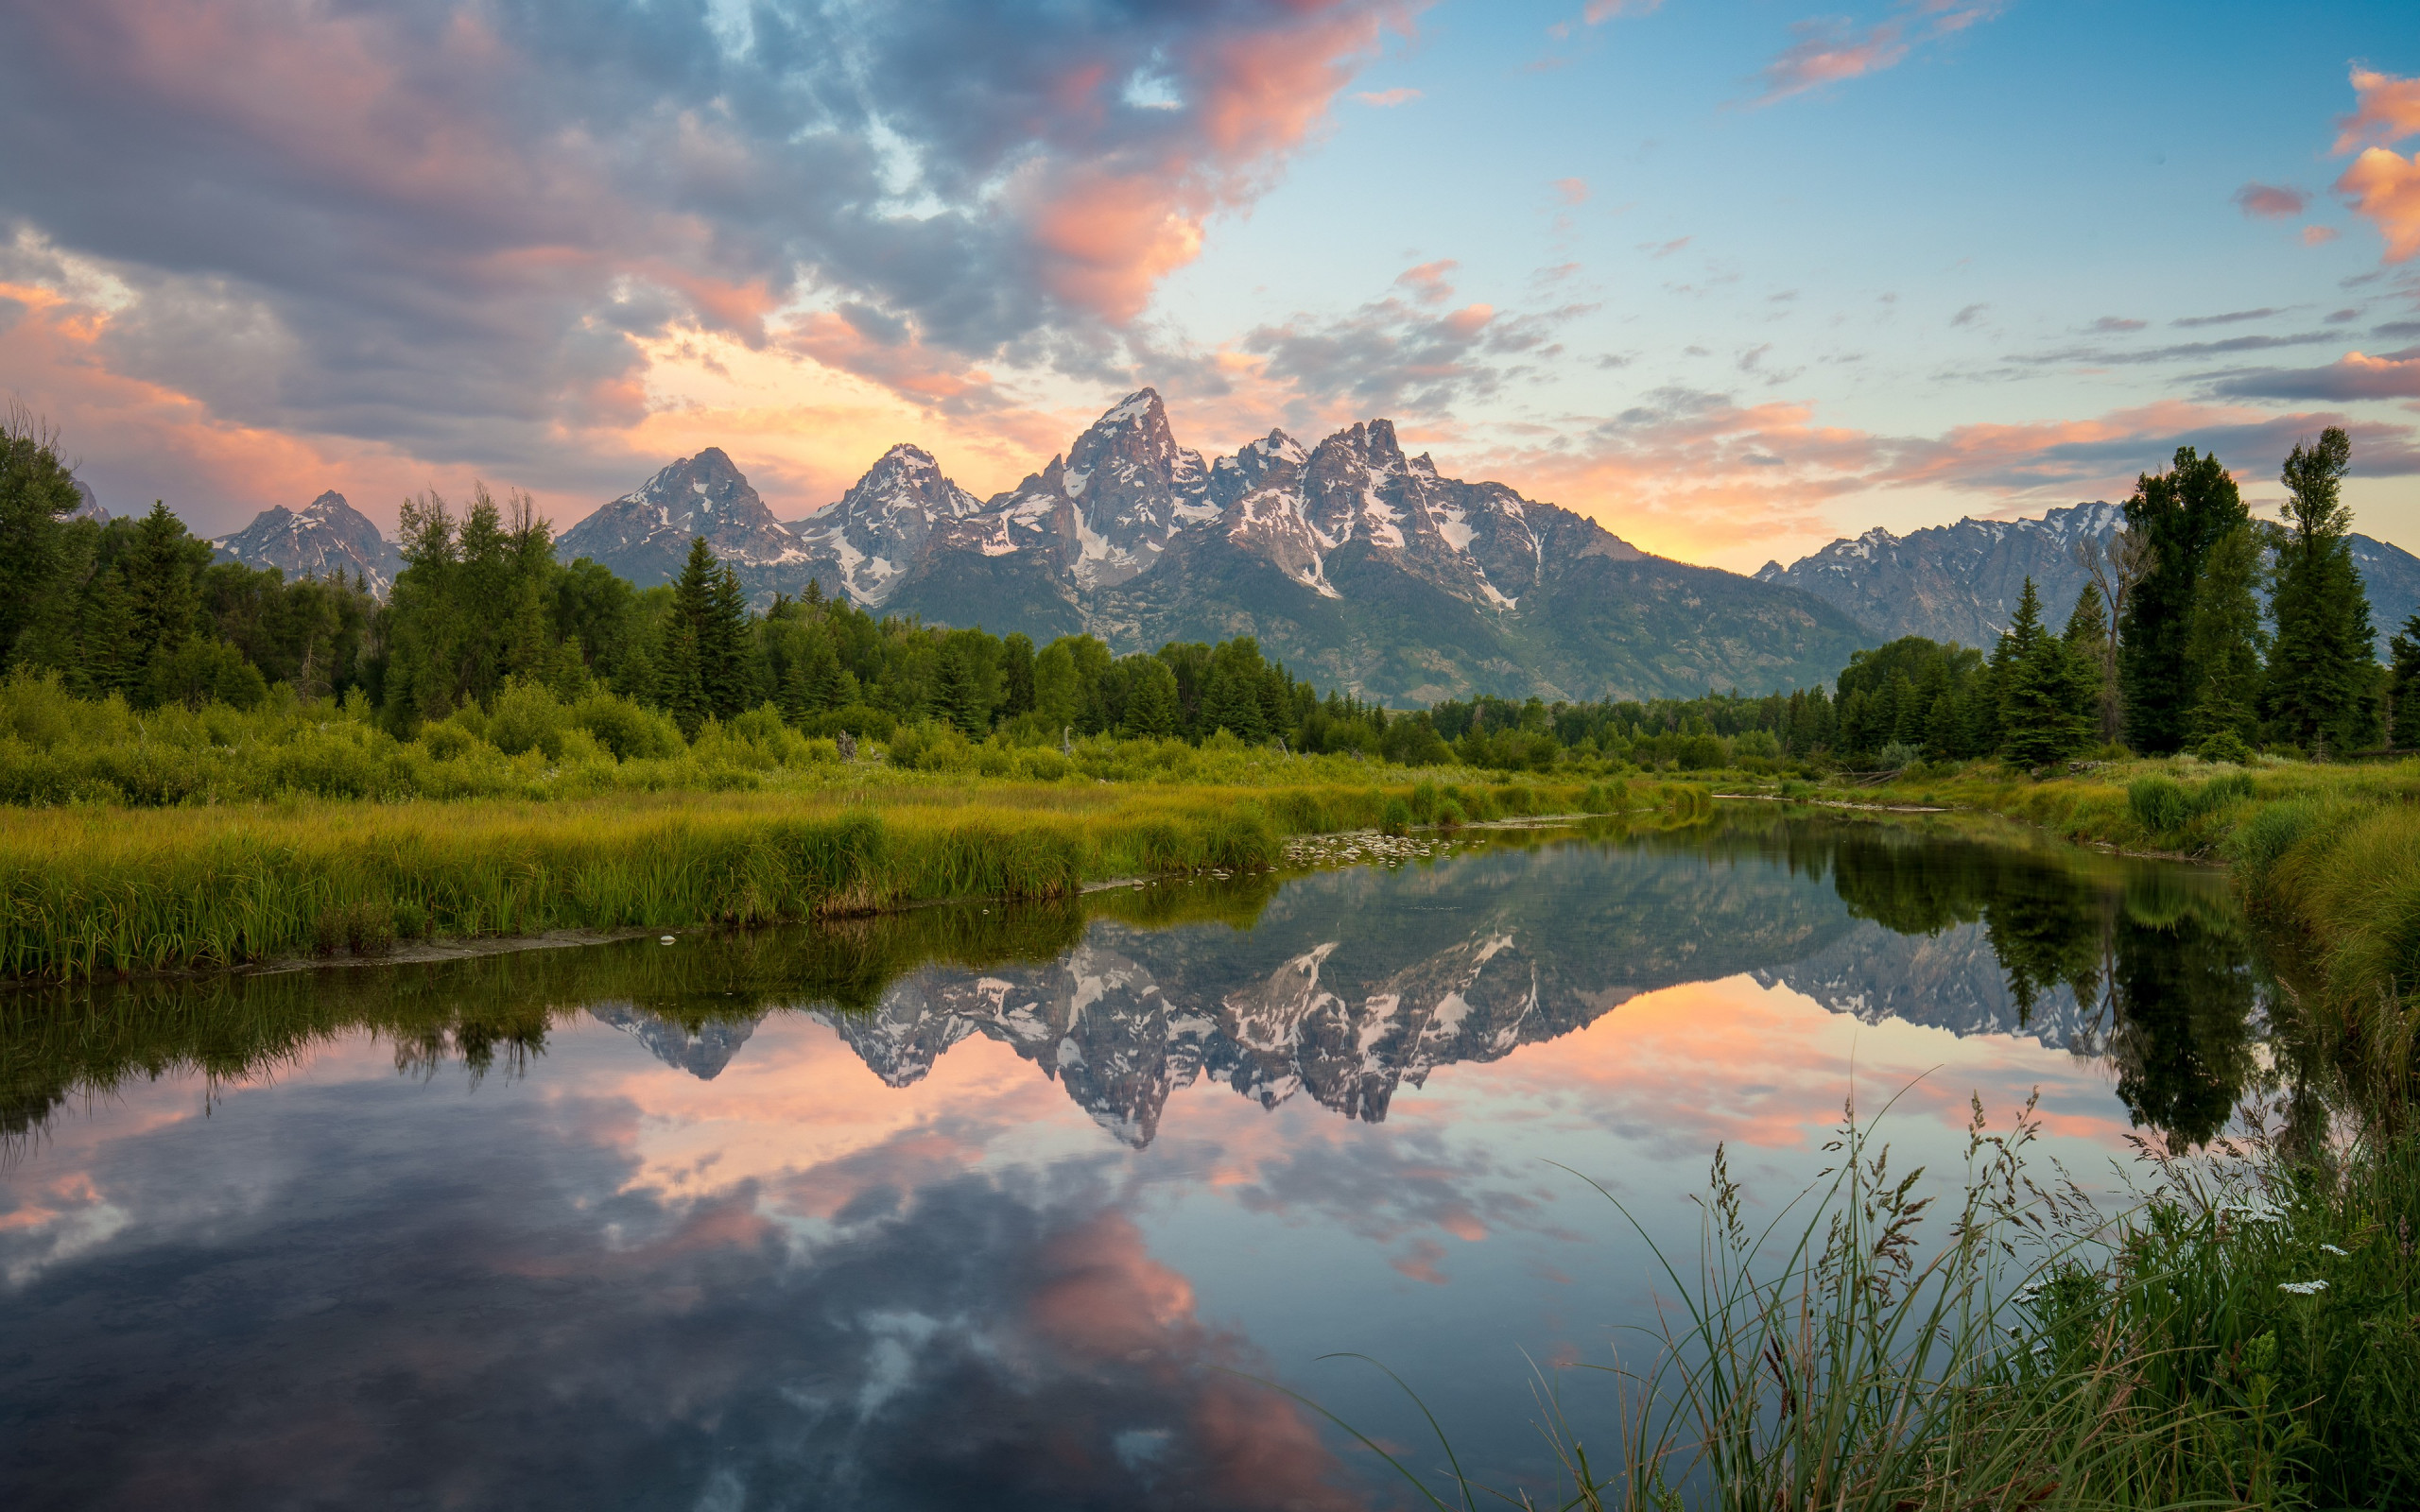 Grand Teton National Park | 2560x1600 wallpaper